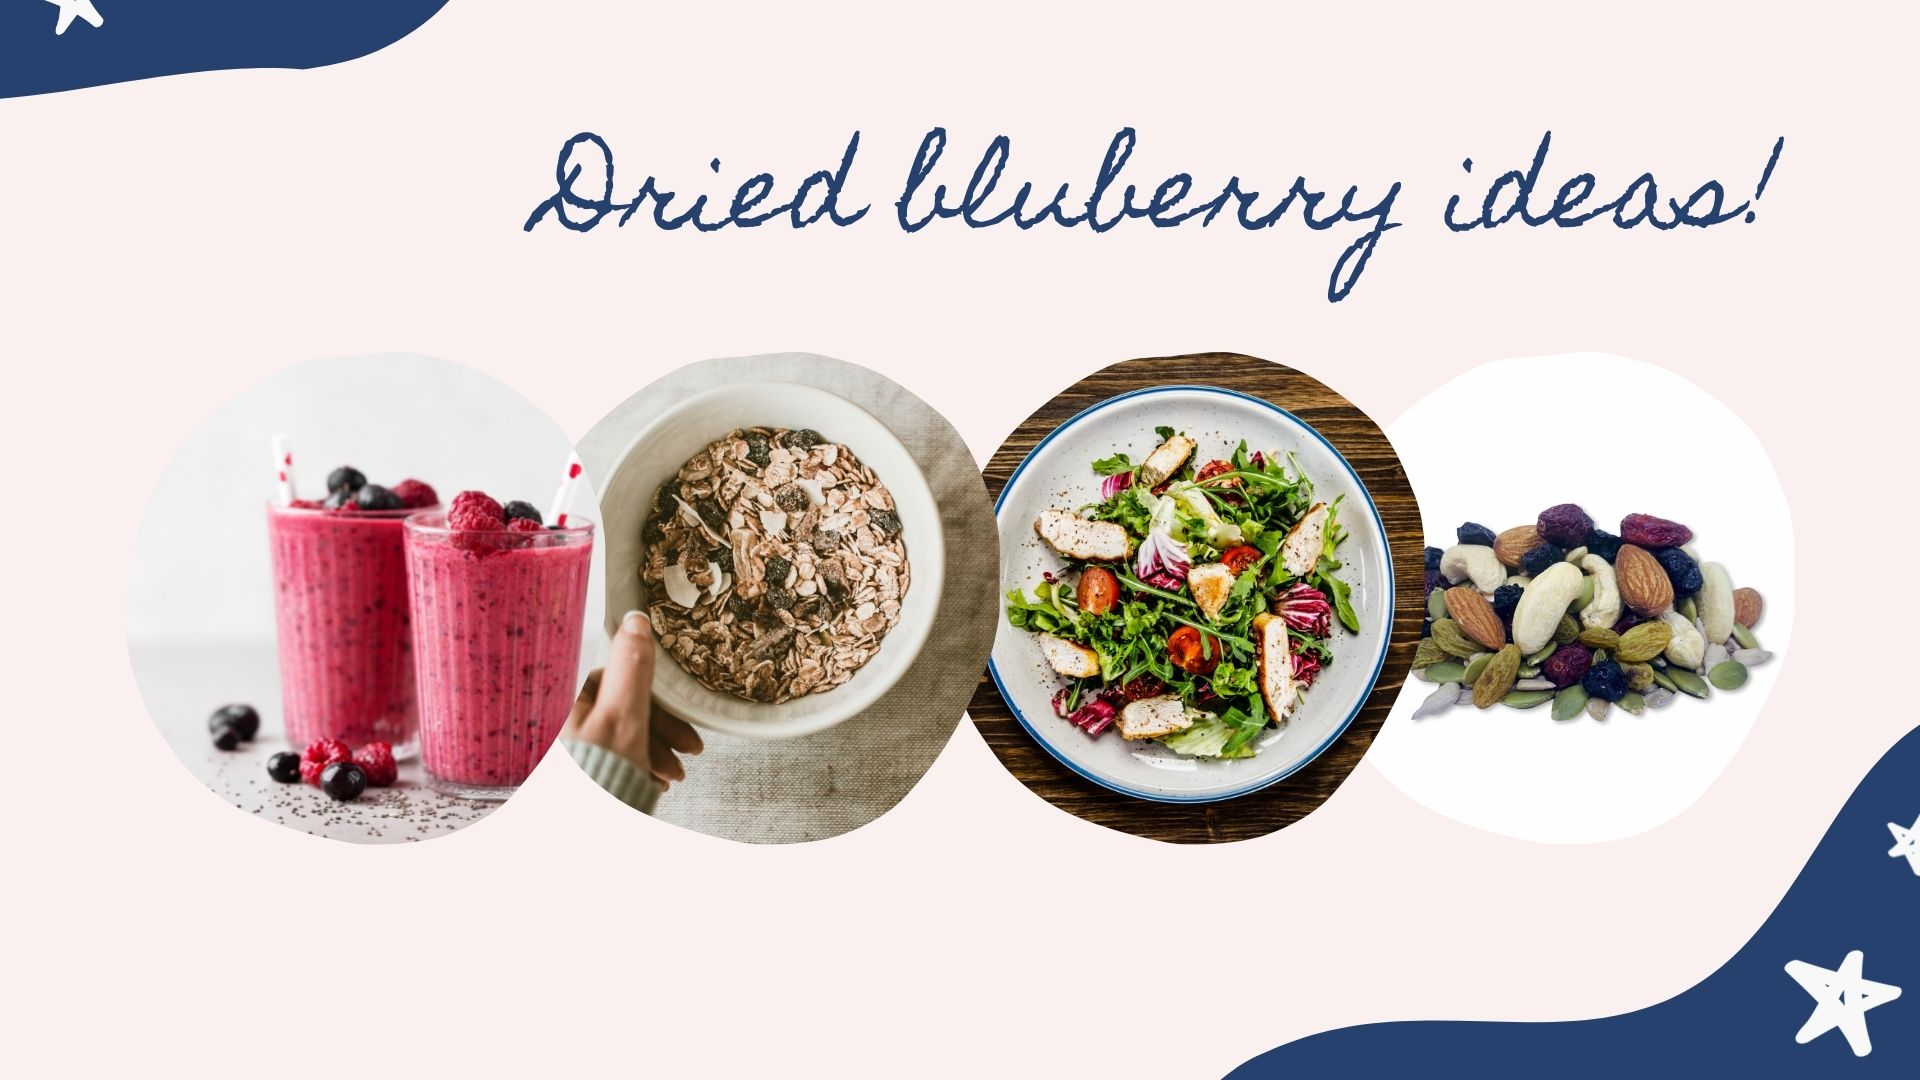 including dried blueberries  in your diet